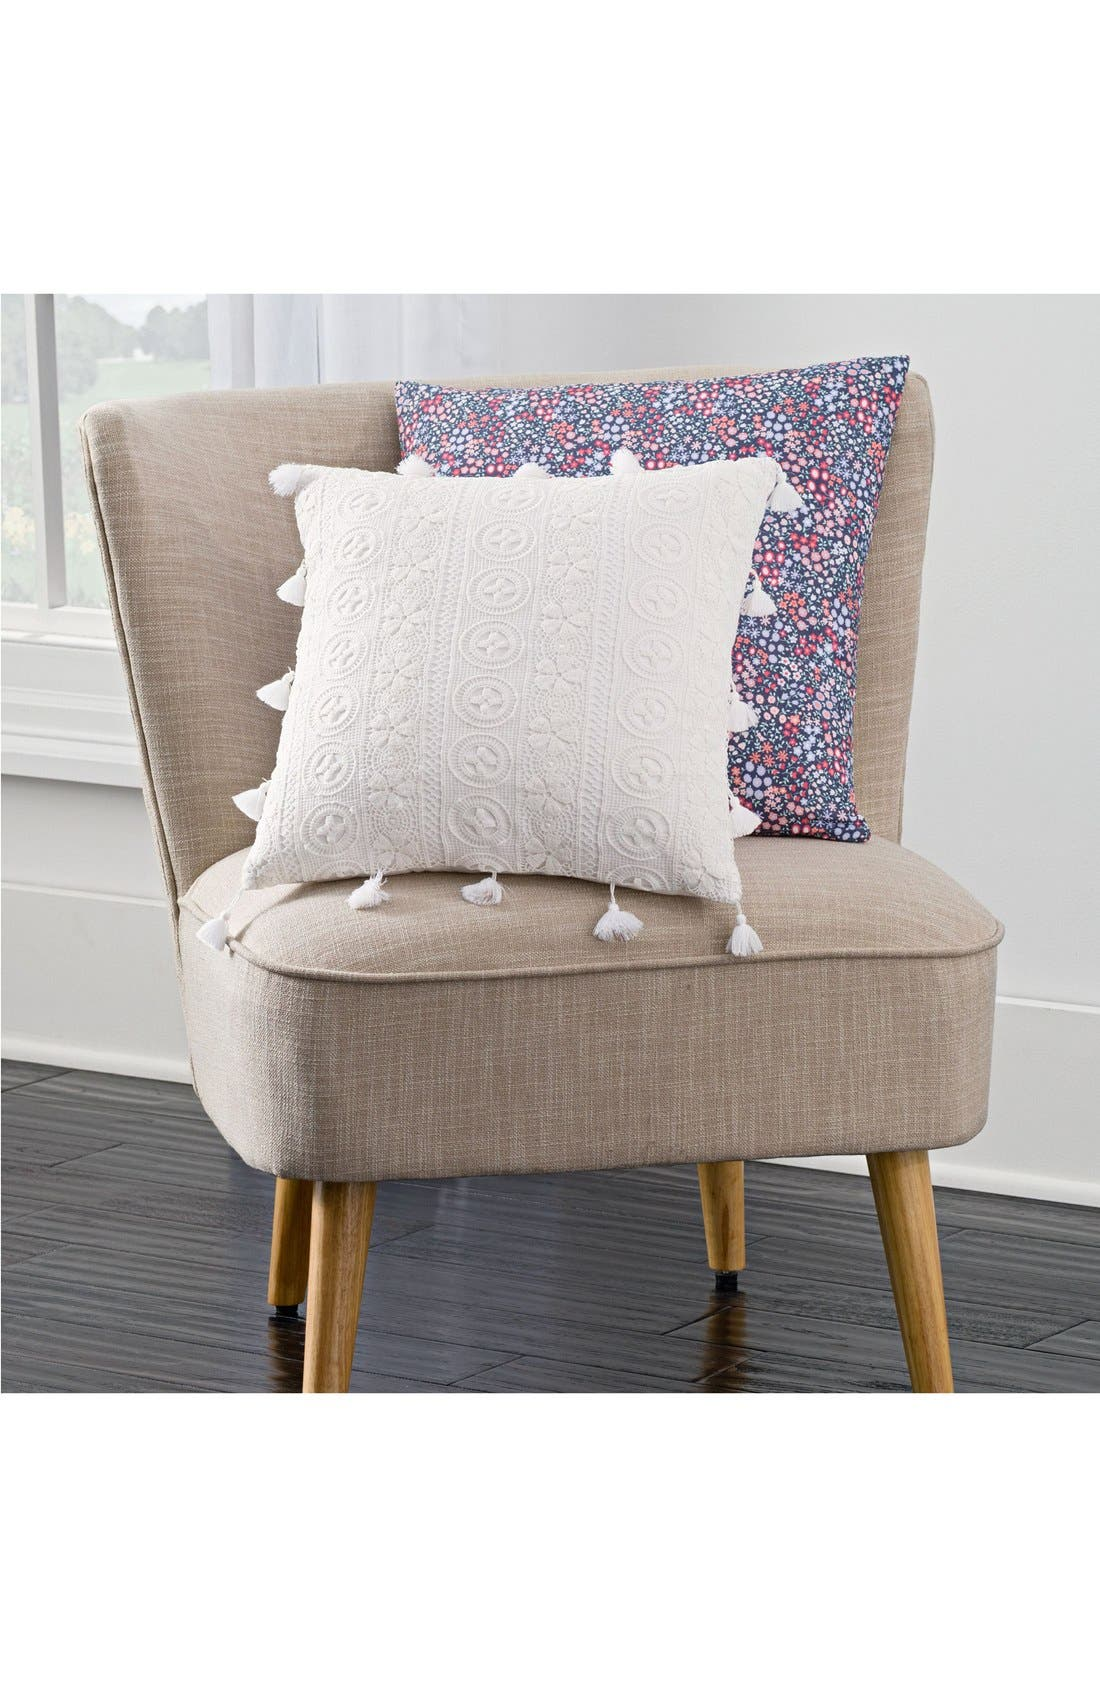 Alternate Image 2  - cupcakes and cashmere 'Sketch' Floral Print Accent Pillow